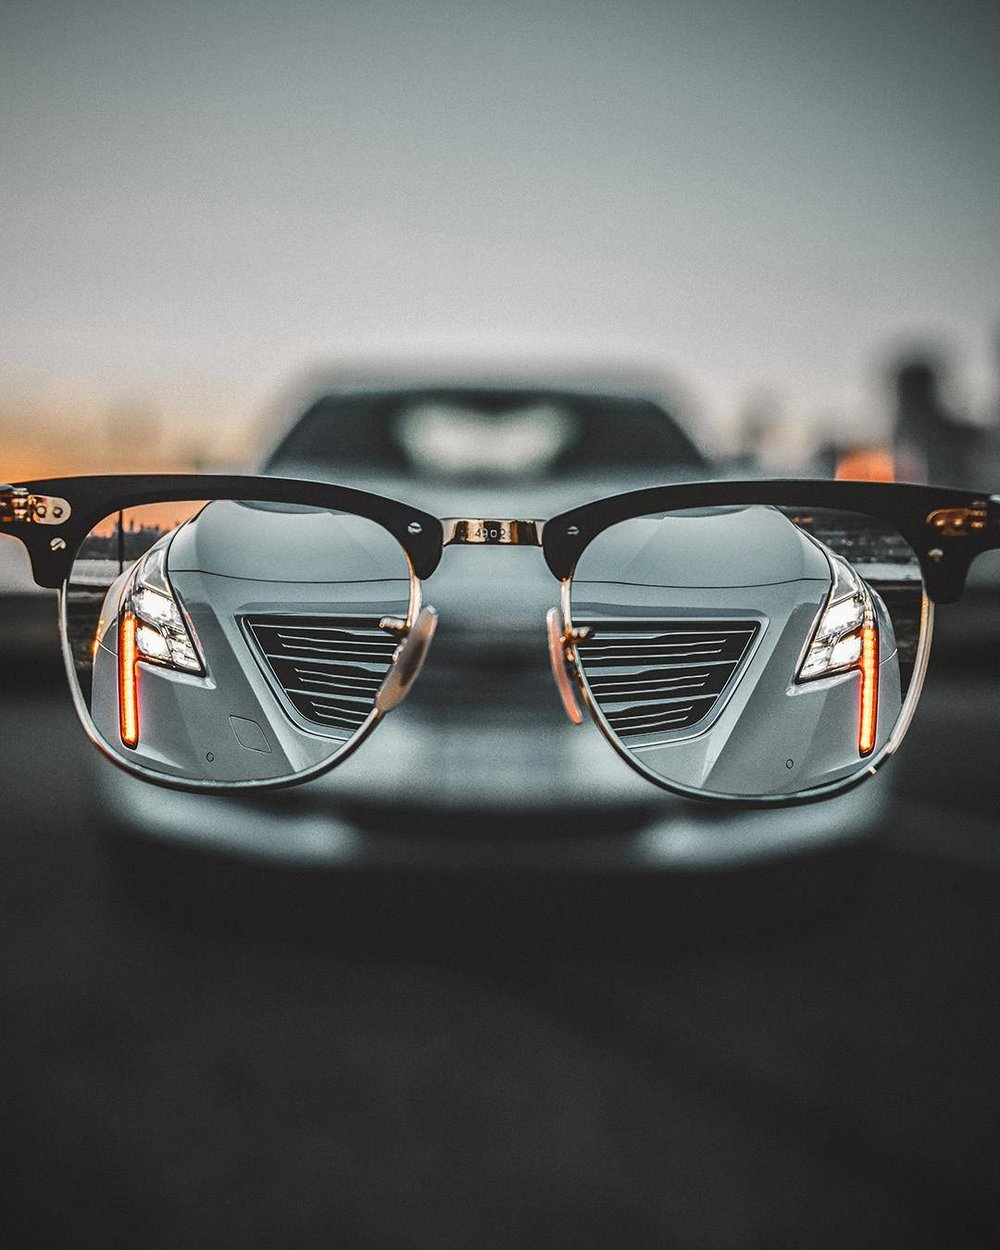 Illuminating in more ways than one. #CT6